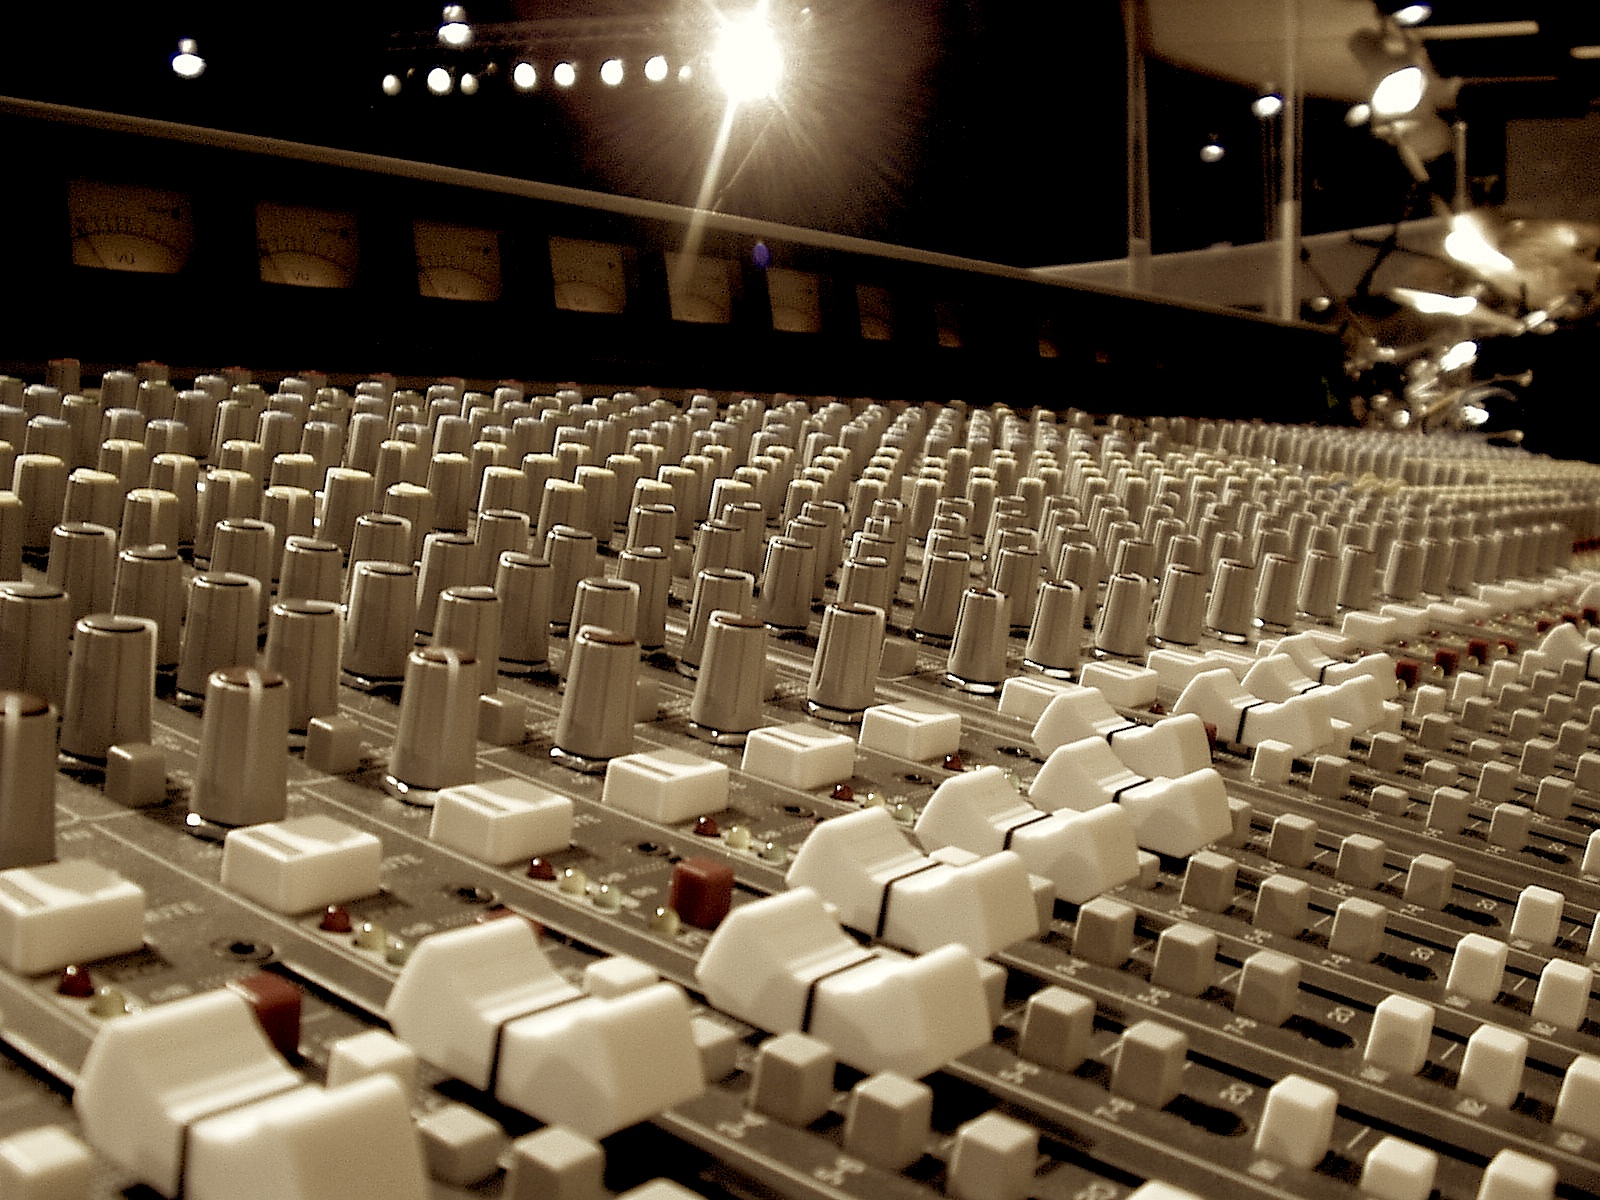 Choosing the right Music producer – (how to find the right producer to work with)